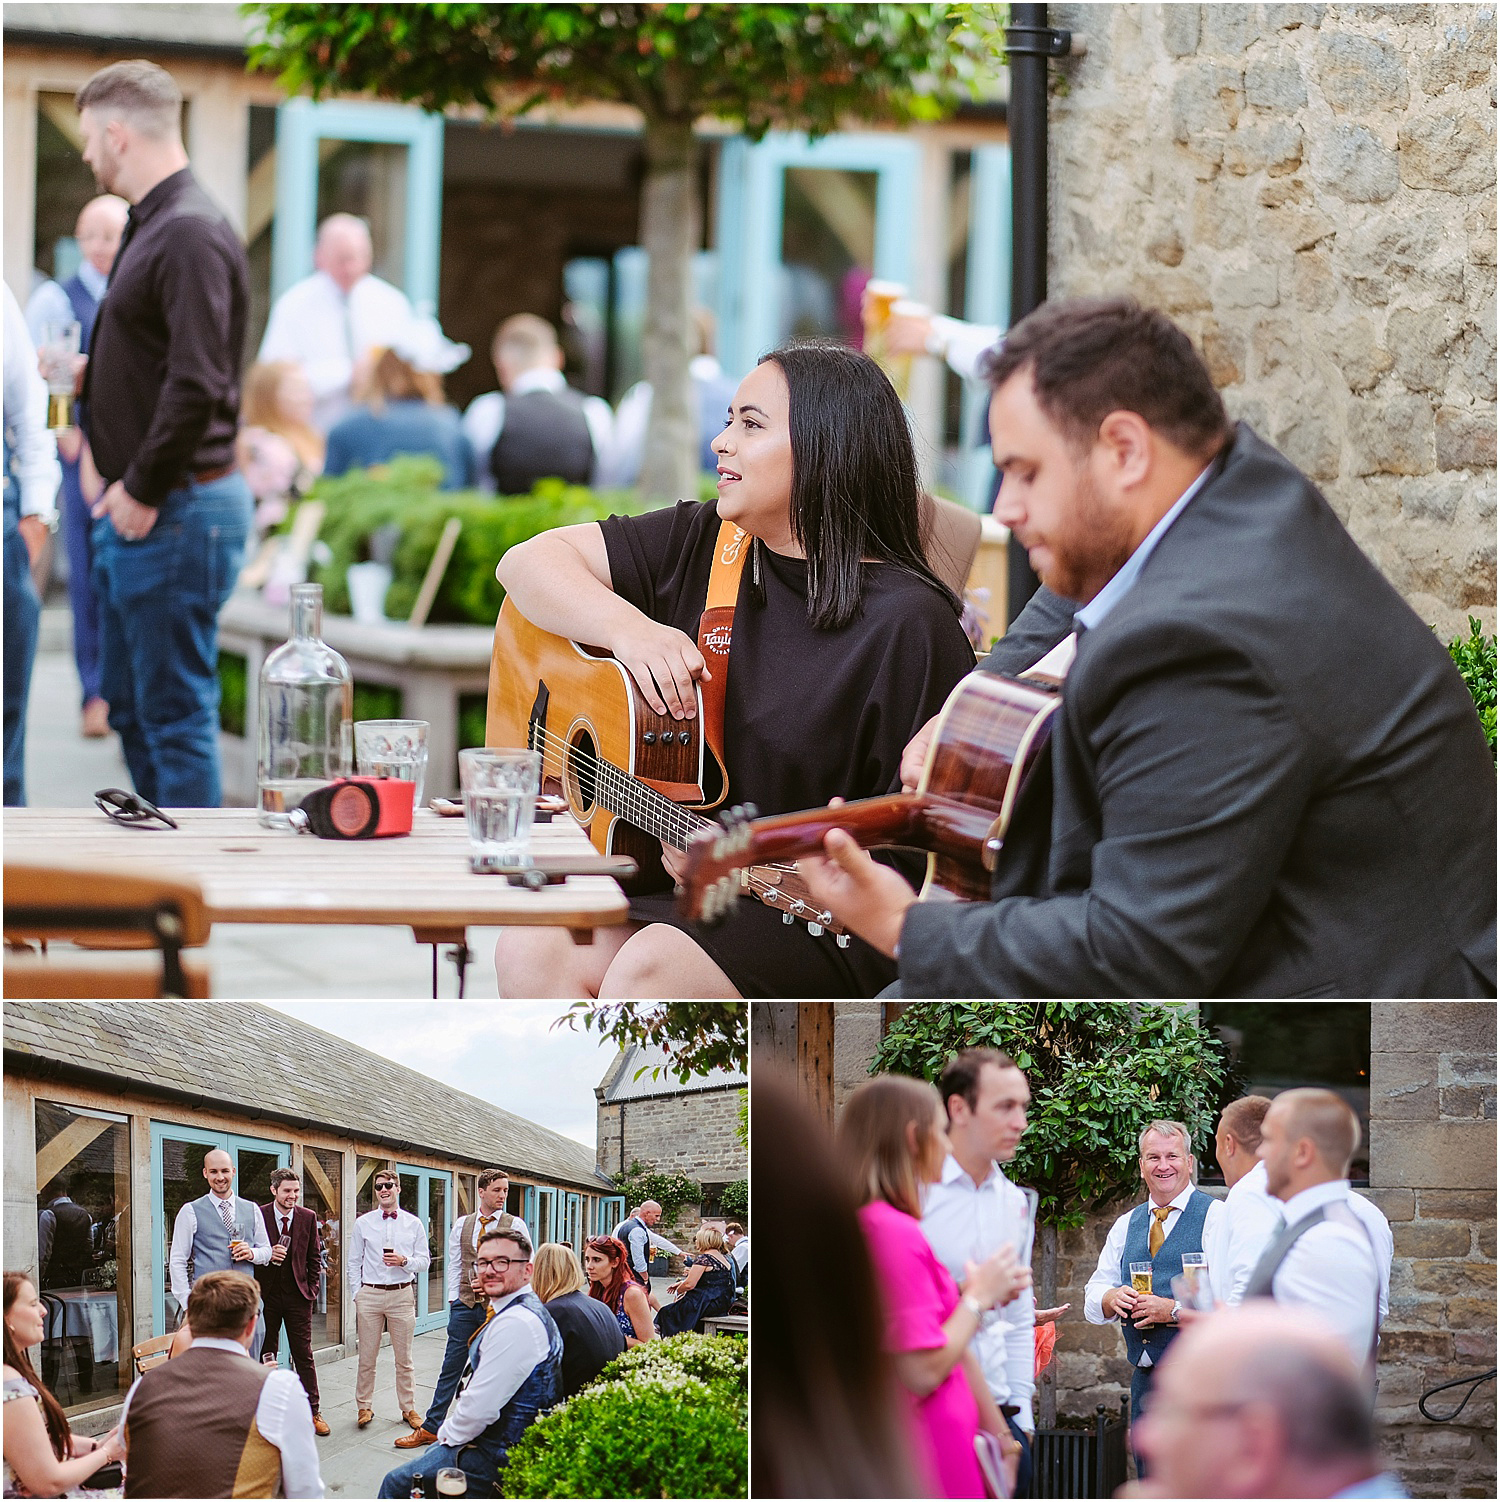 Wedding at Healey Barn - wedding photography by www.2tonephotography.co.uk 095.jpg